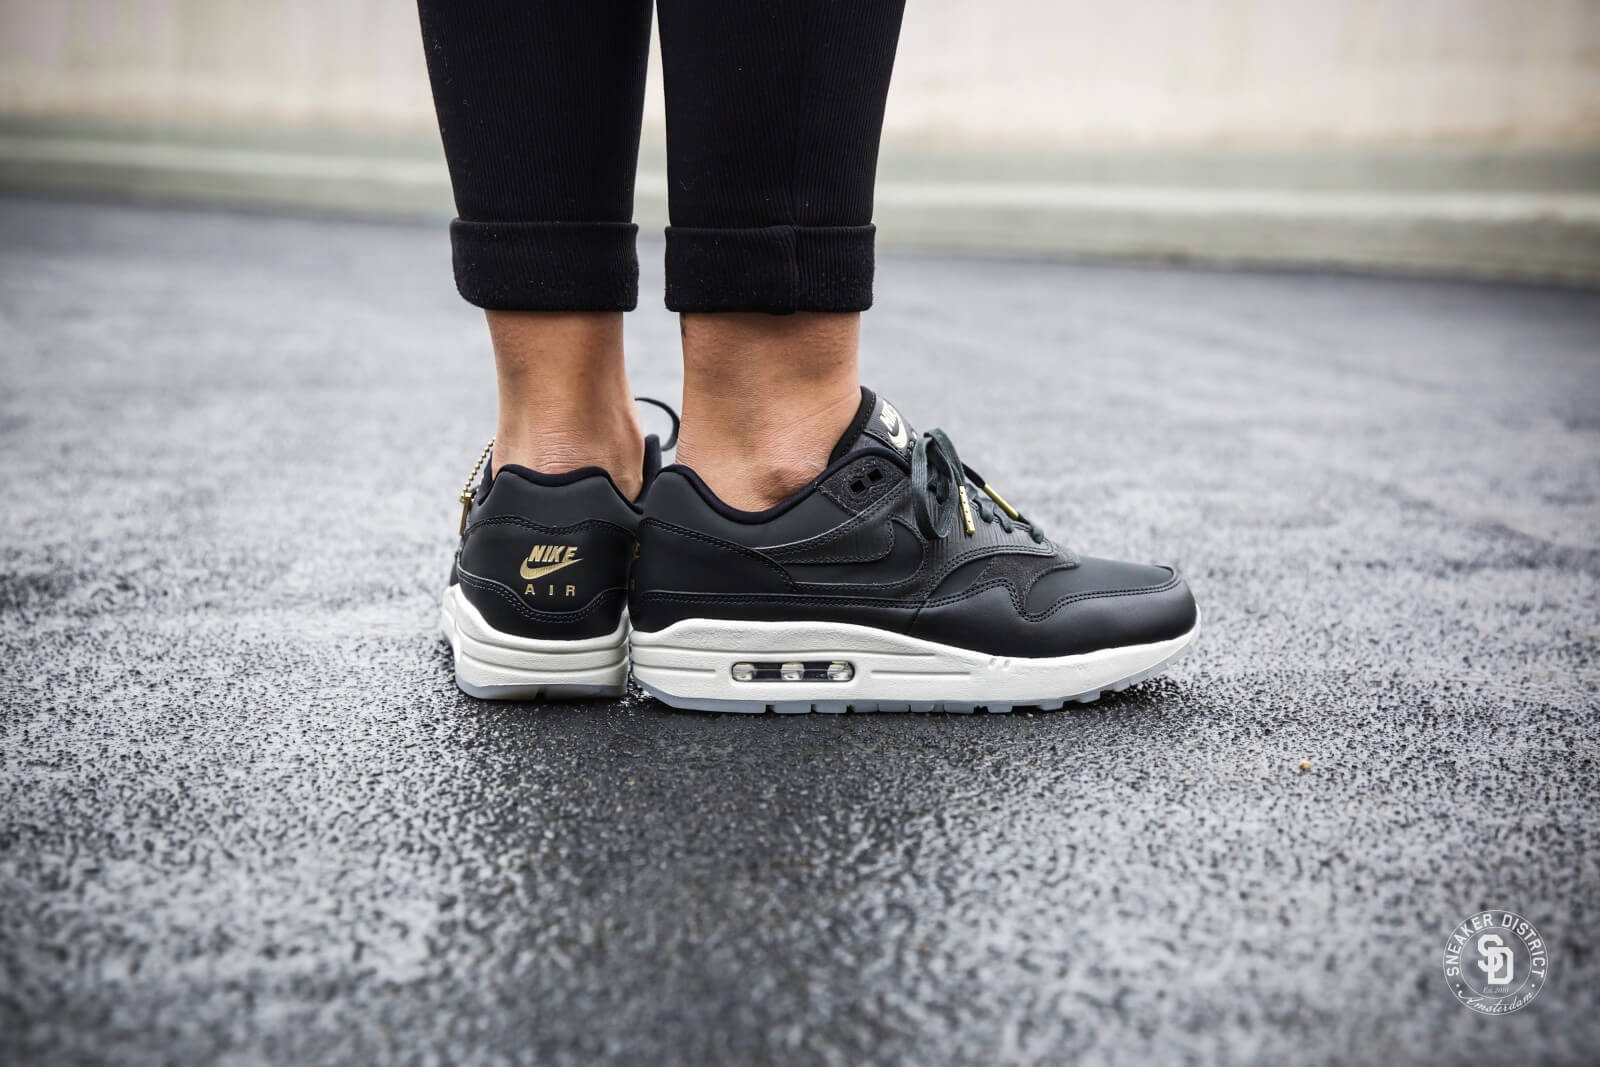 Get The Nike WMNS Air Max 1 Premium Anthracite Now